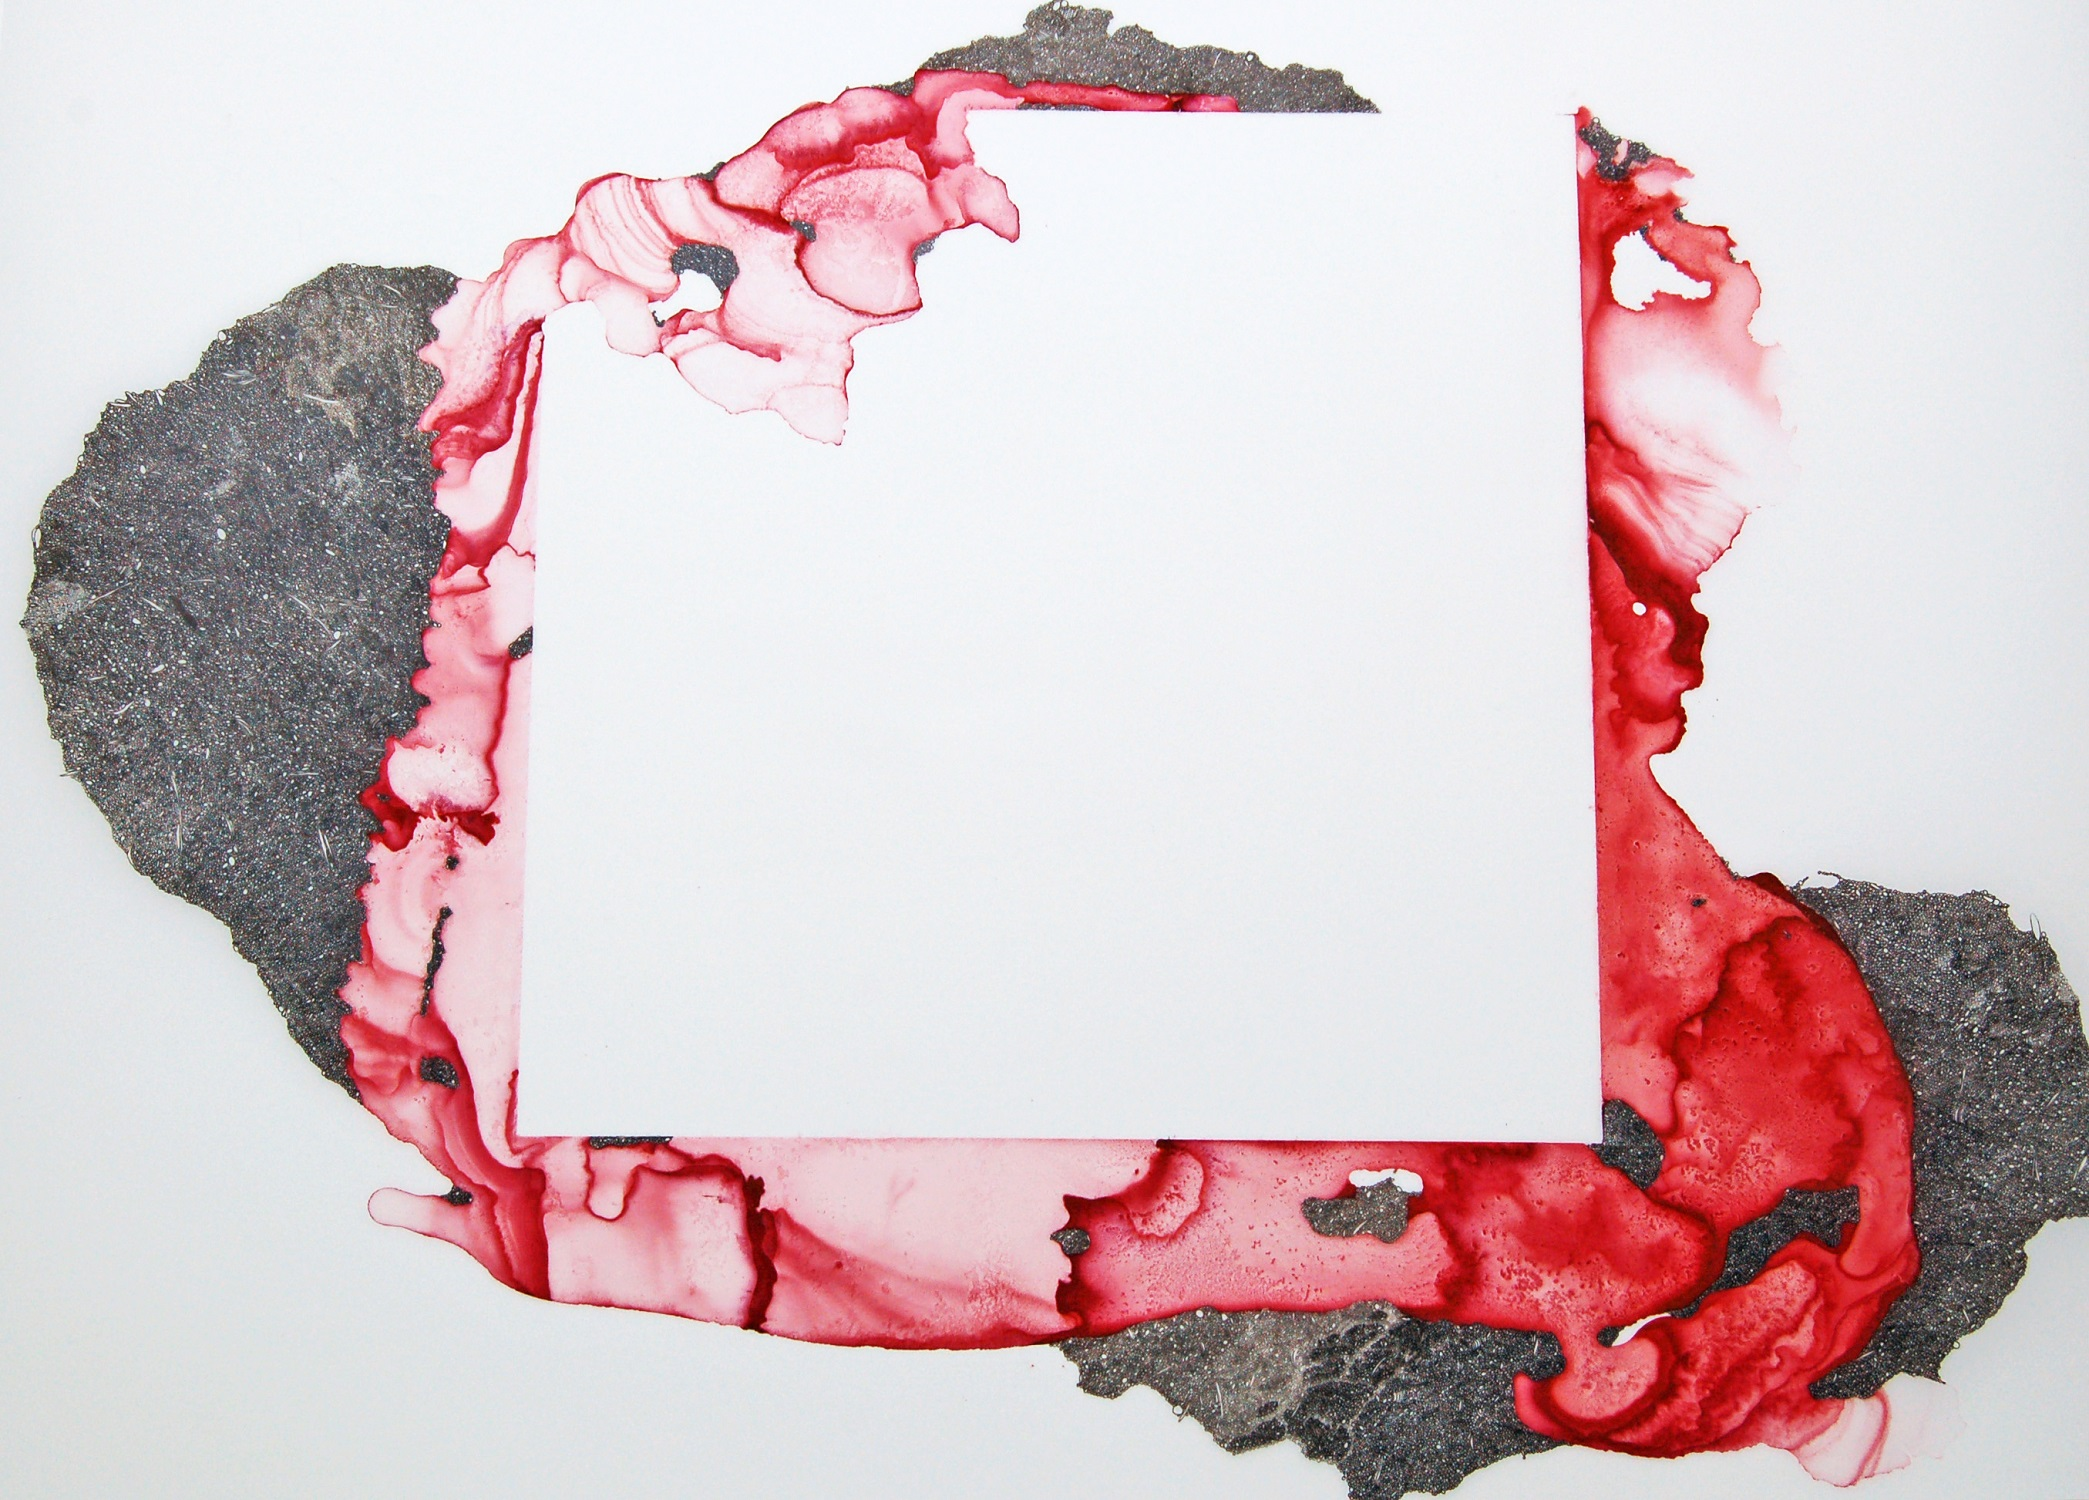 Squeeze Play Lisa Kellner Raw Pigment, Ink and Ink Drawing on Mylar 22 x 25 inches